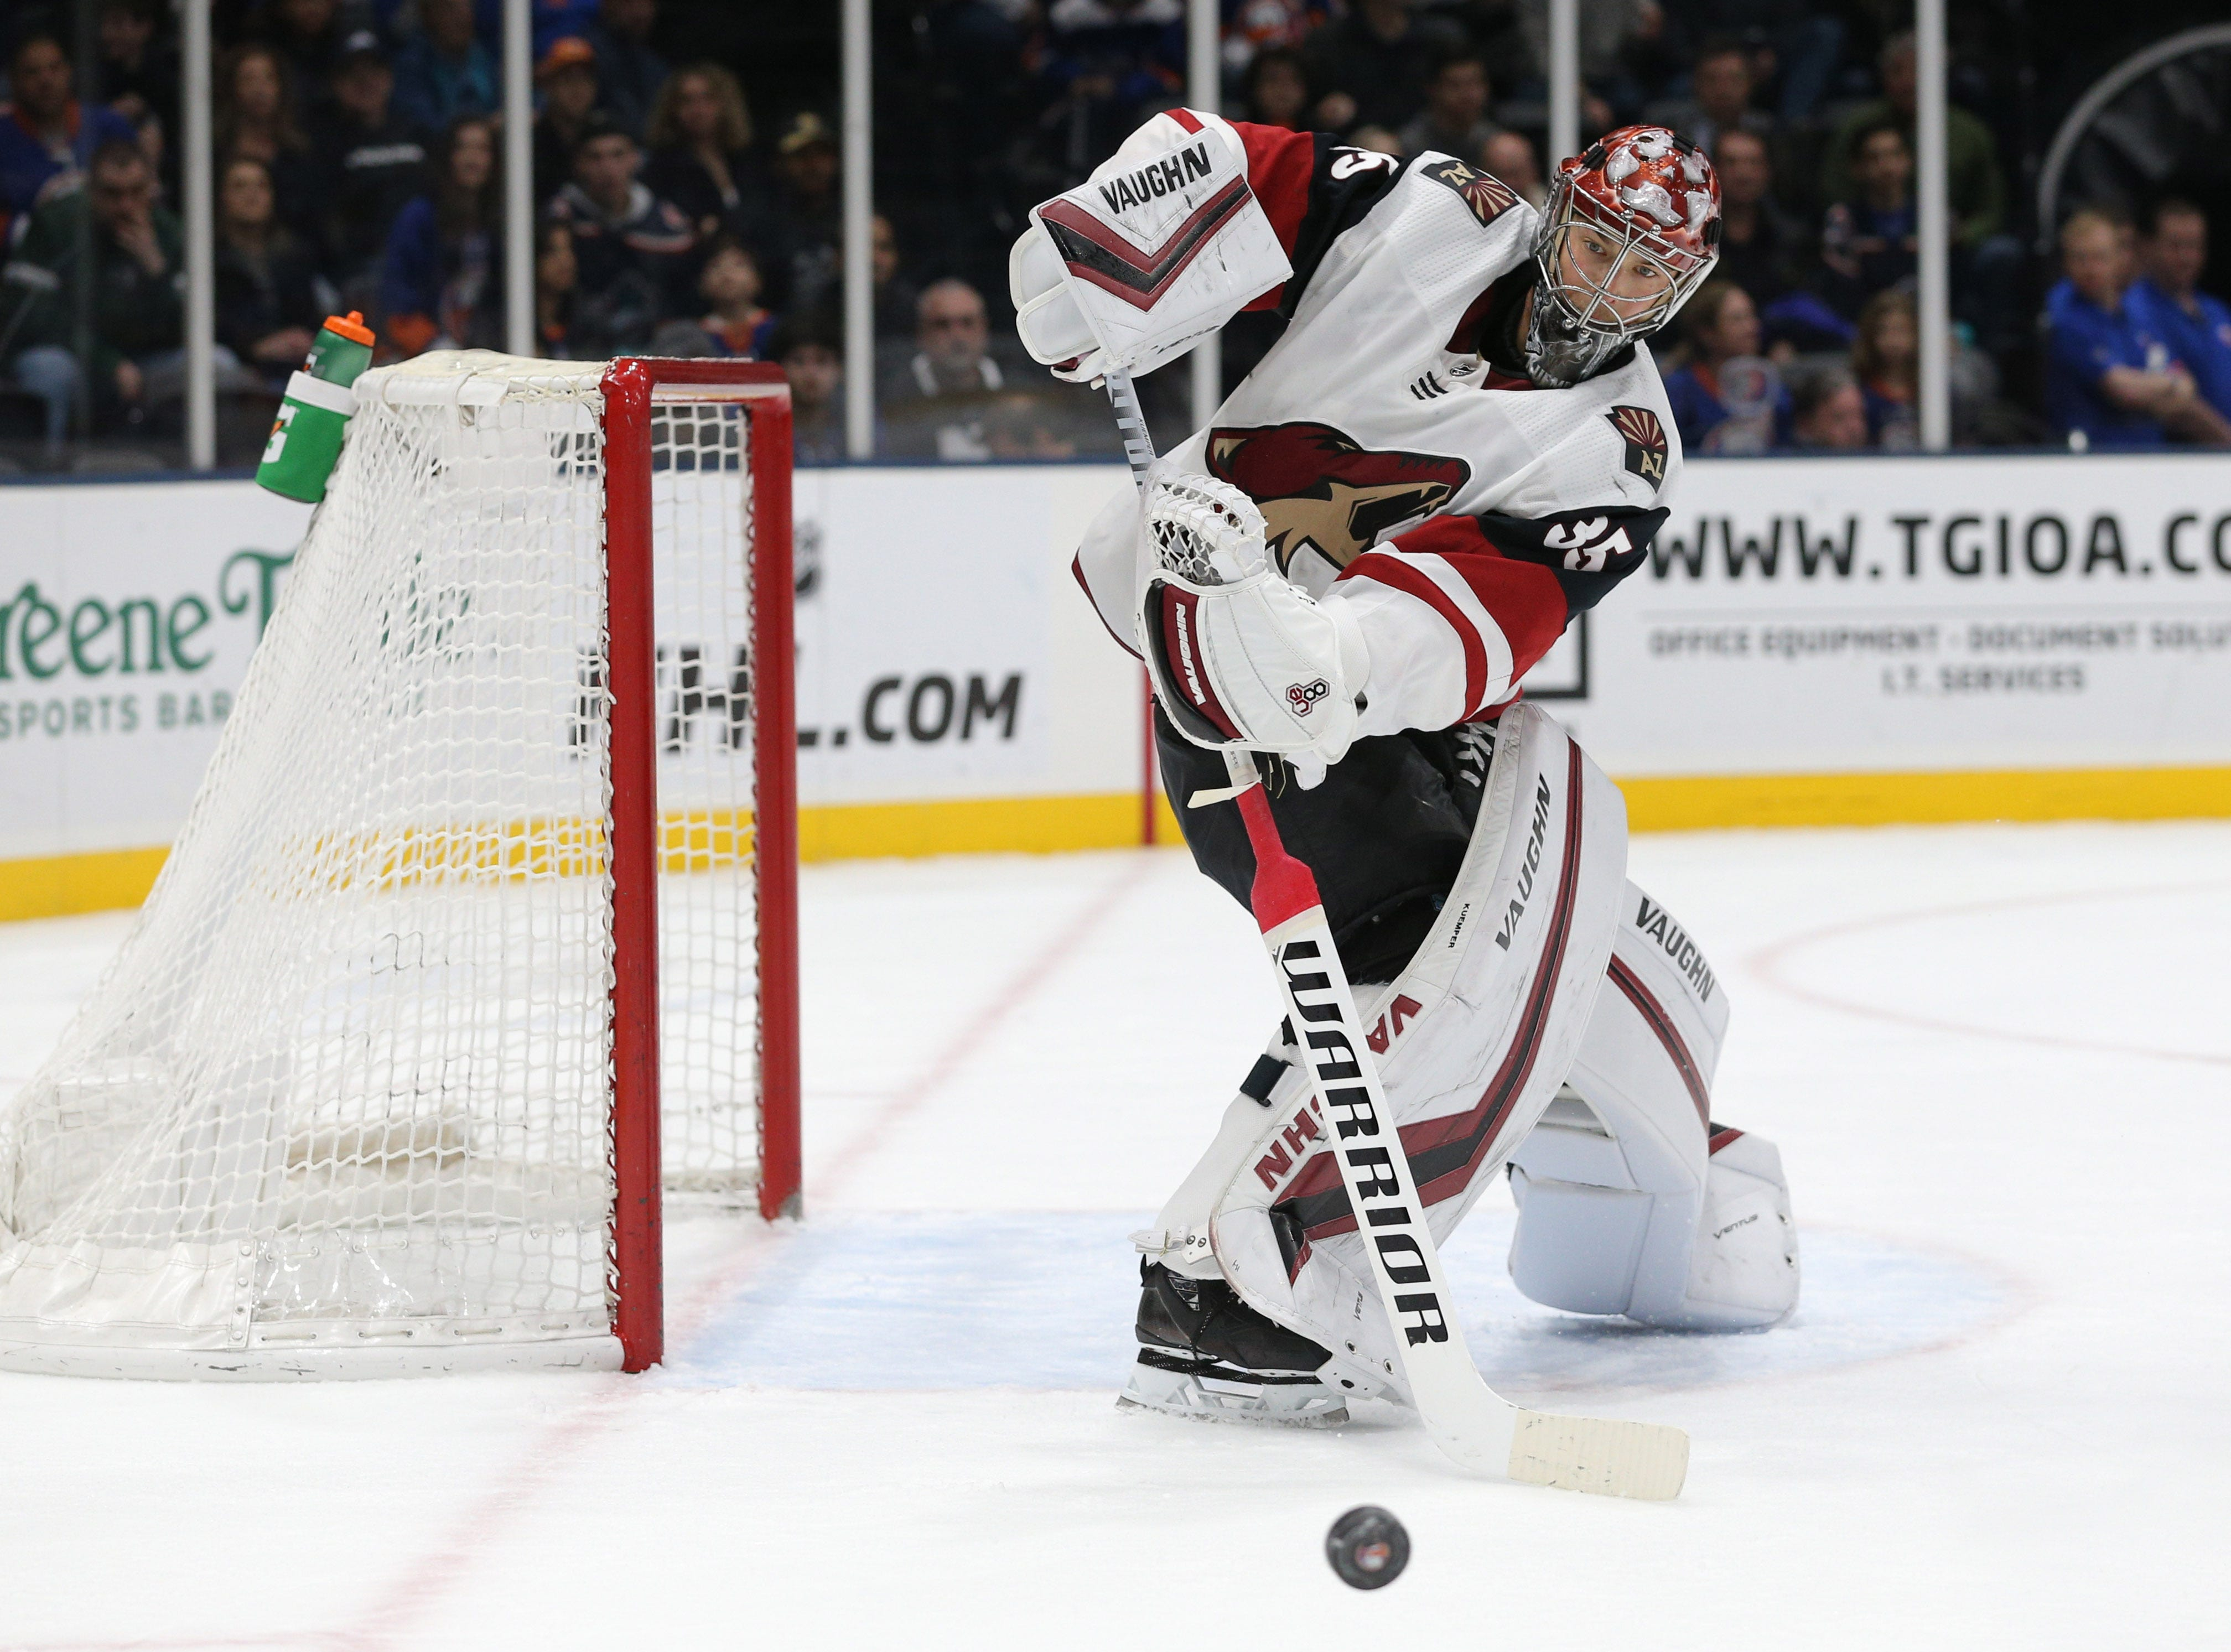 Mar 24, 2019; Uniondale, NY, USA; Arizona Coyotes goalie Darcy Kuemper (35) clears the puck from the crease against the New York Islanders during the second period at Nassau Veterans Memorial Coliseum. Mandatory Credit: Brad Penner-USA TODAY Sports